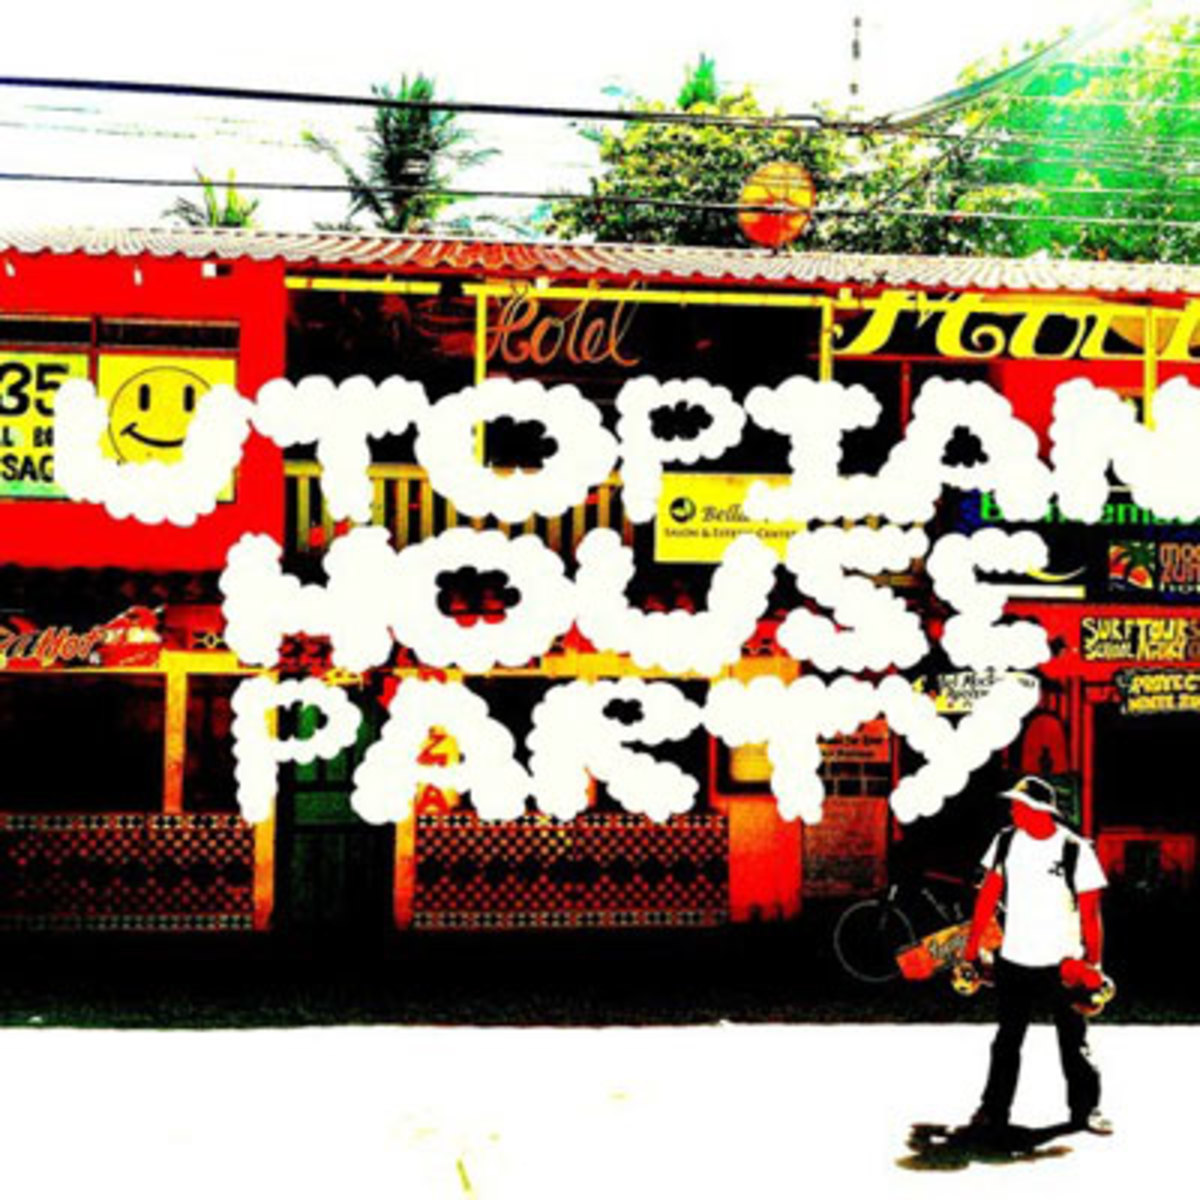 goodhuzz-utopianhouseparty.jpg